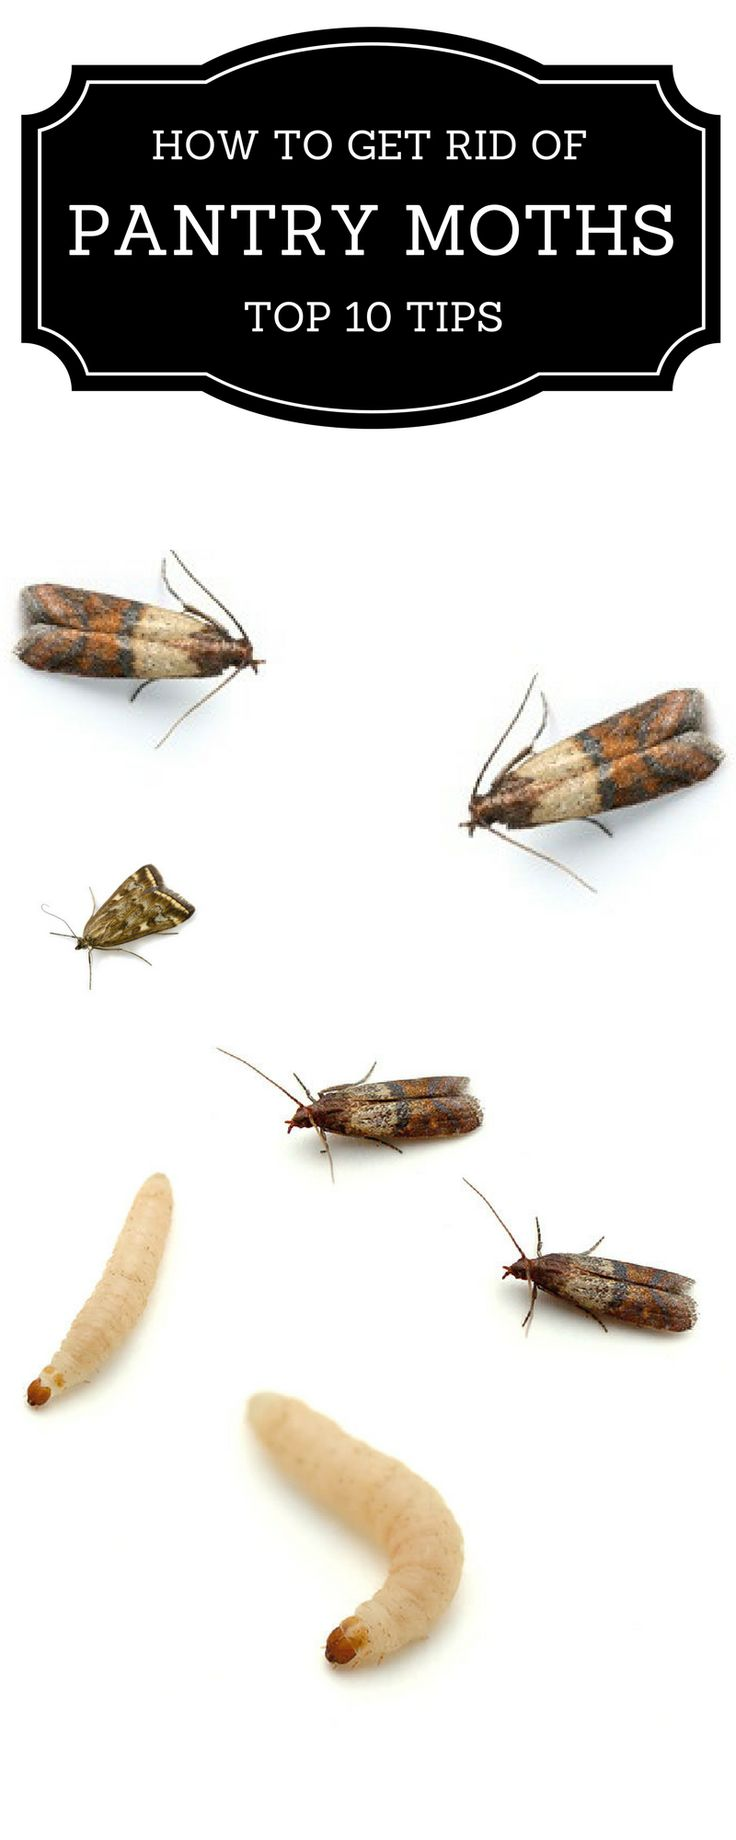 25 best ideas about pantry moths on pinterest moth repellent meal moths and stain removers. Black Bedroom Furniture Sets. Home Design Ideas